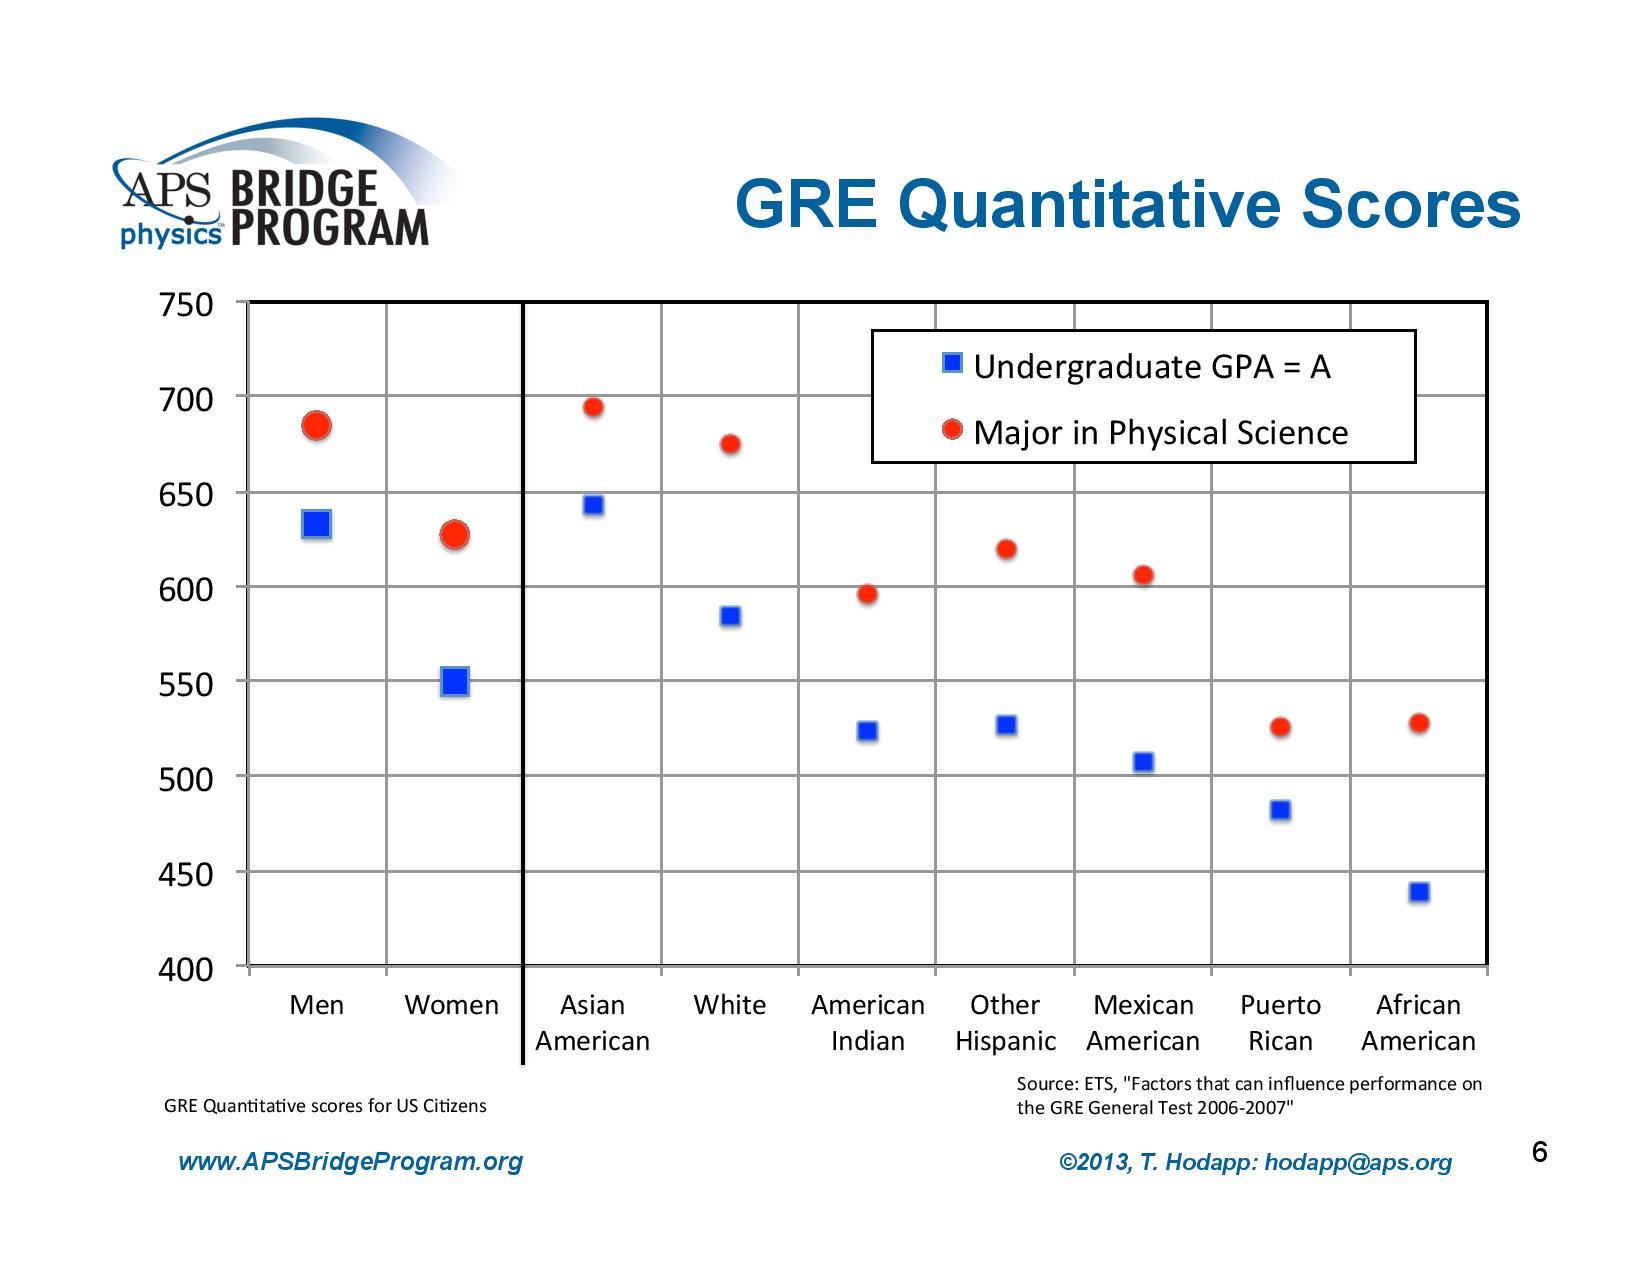 GRE Quantitative Scores broken out by gender and ethnicity